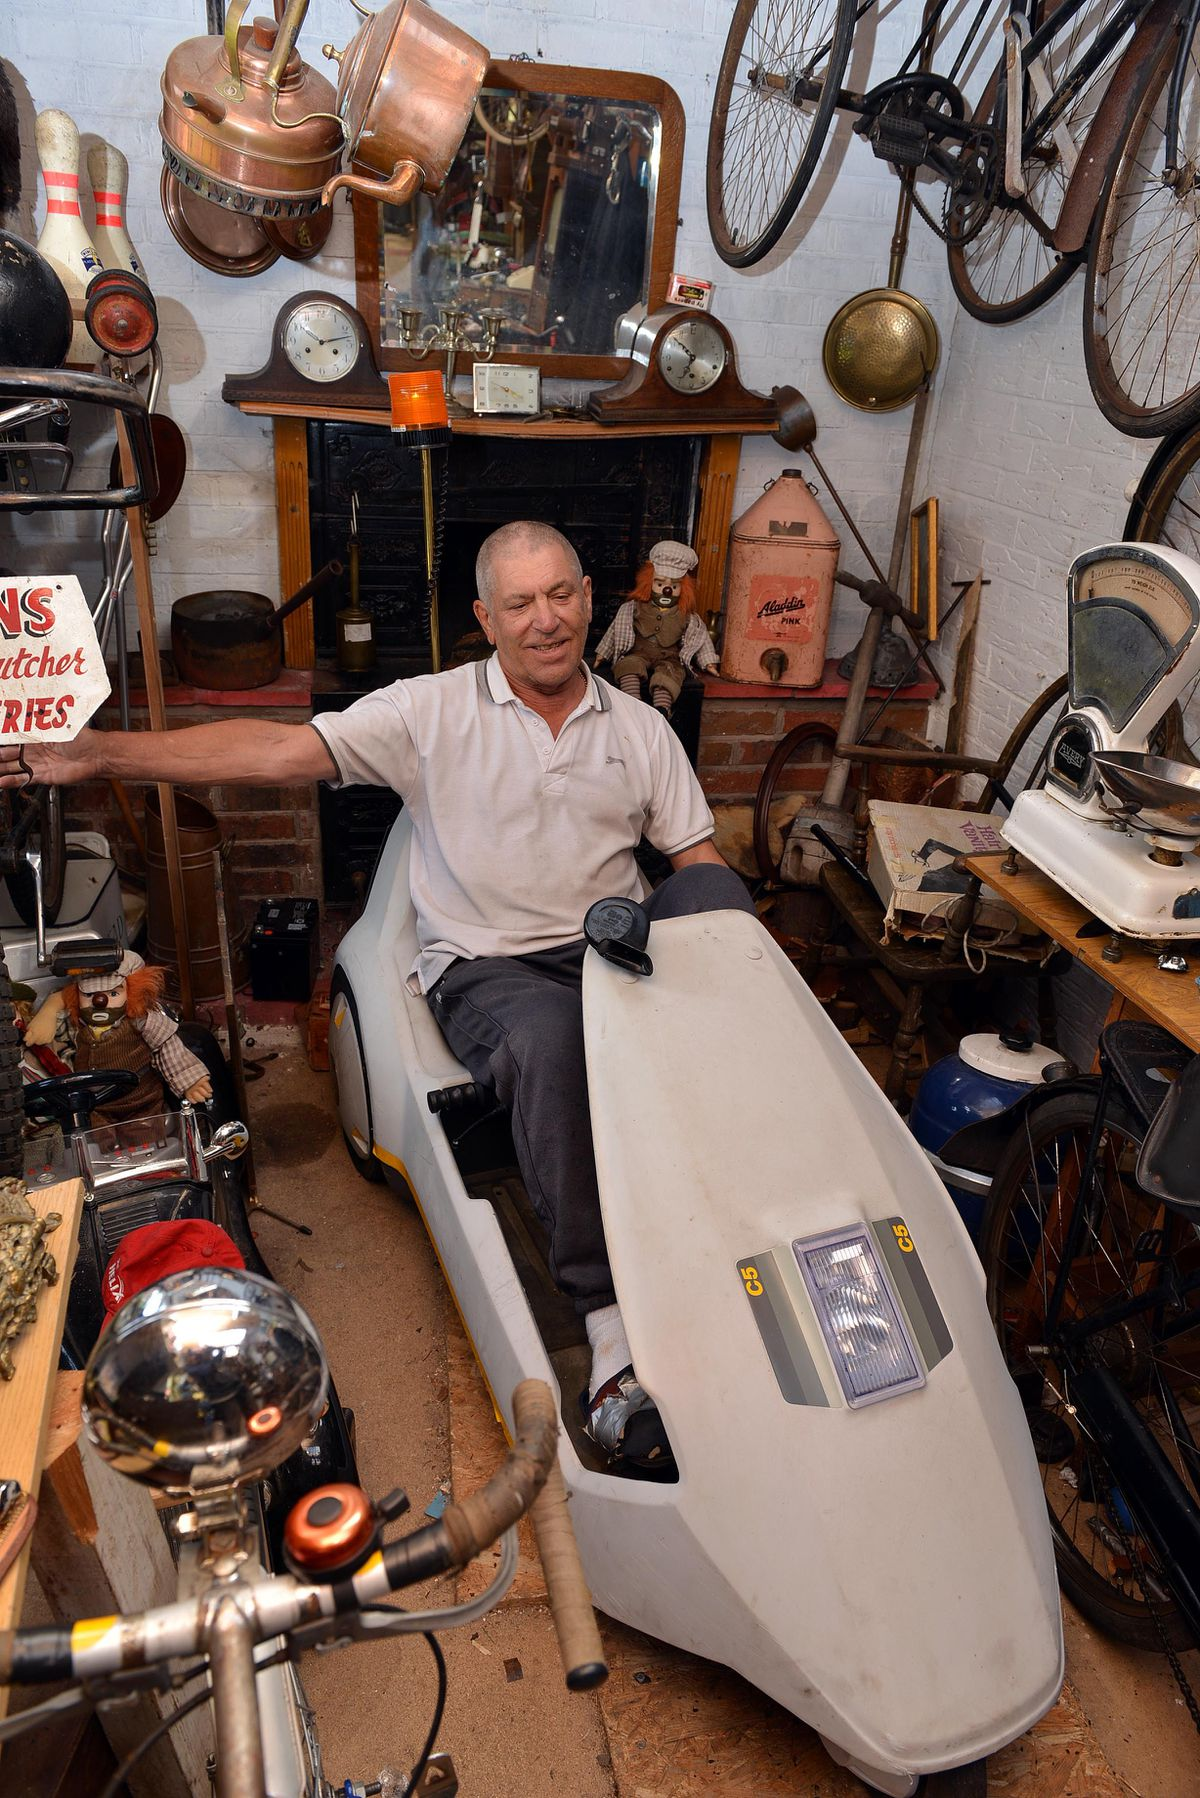 Collector Jake Pearson, pictured in his Sinclair C5